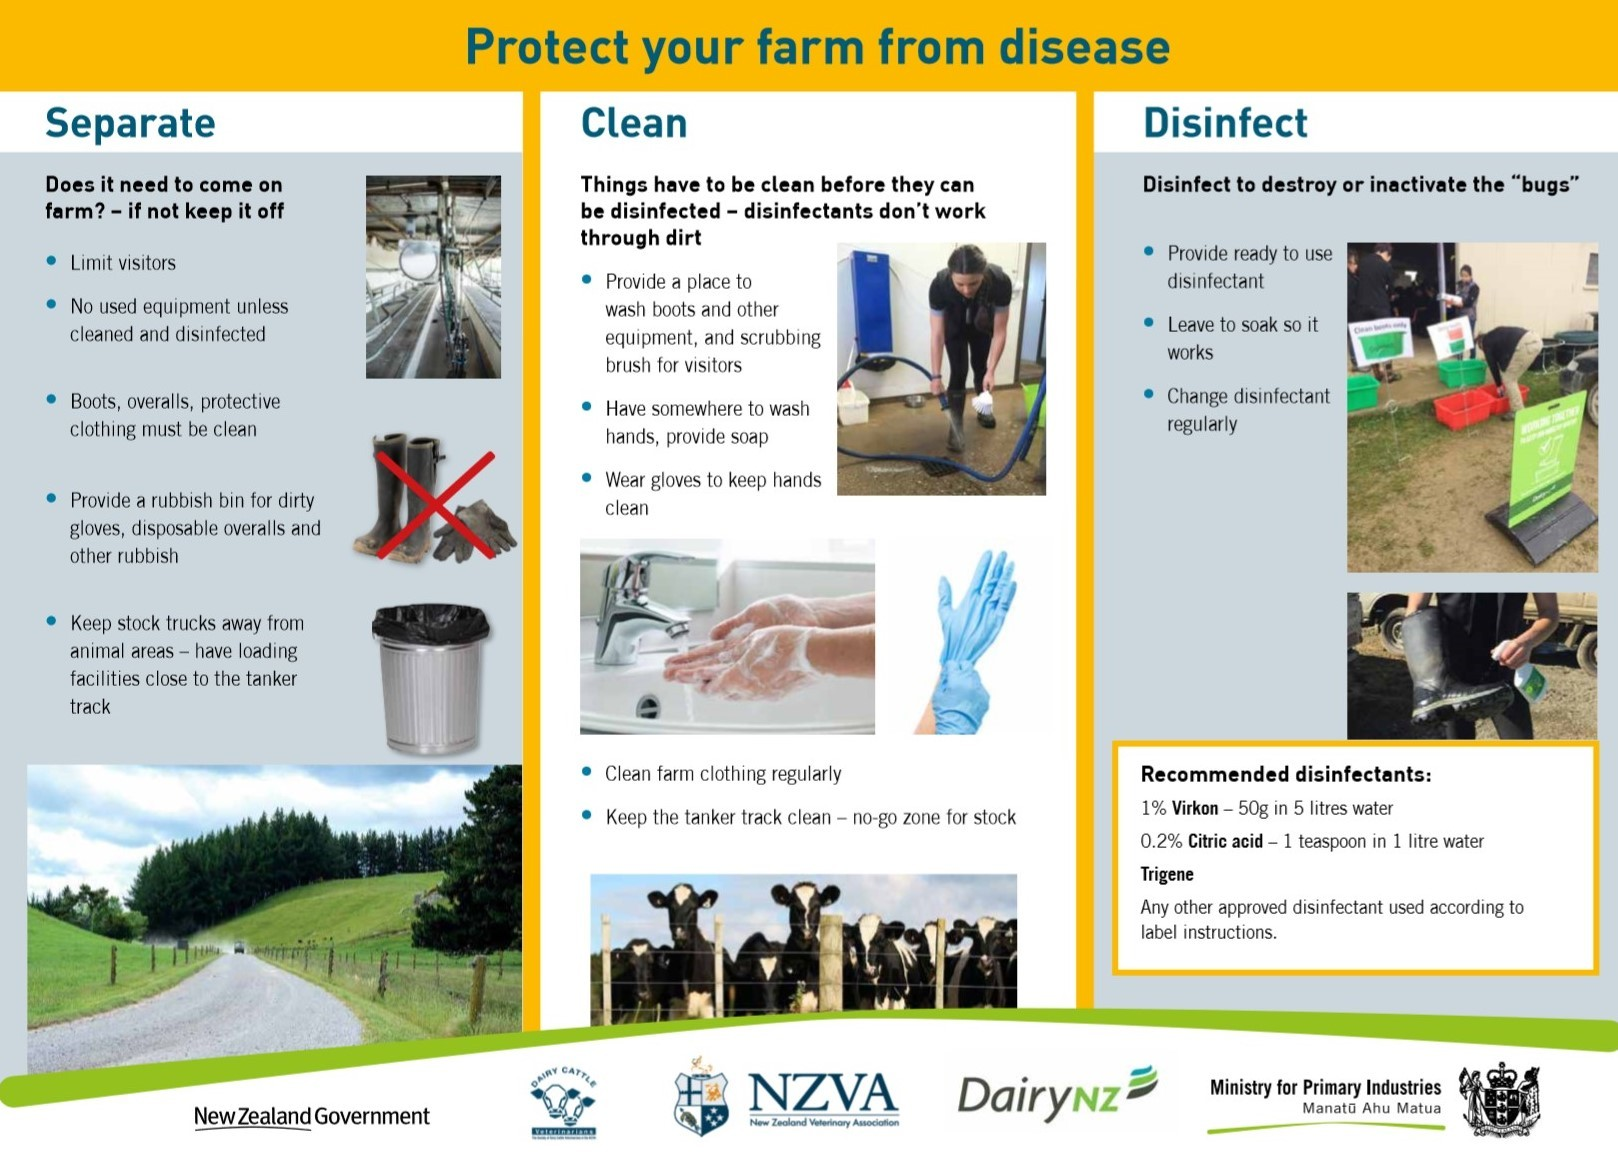 Farm Biosecurity Action Plan image